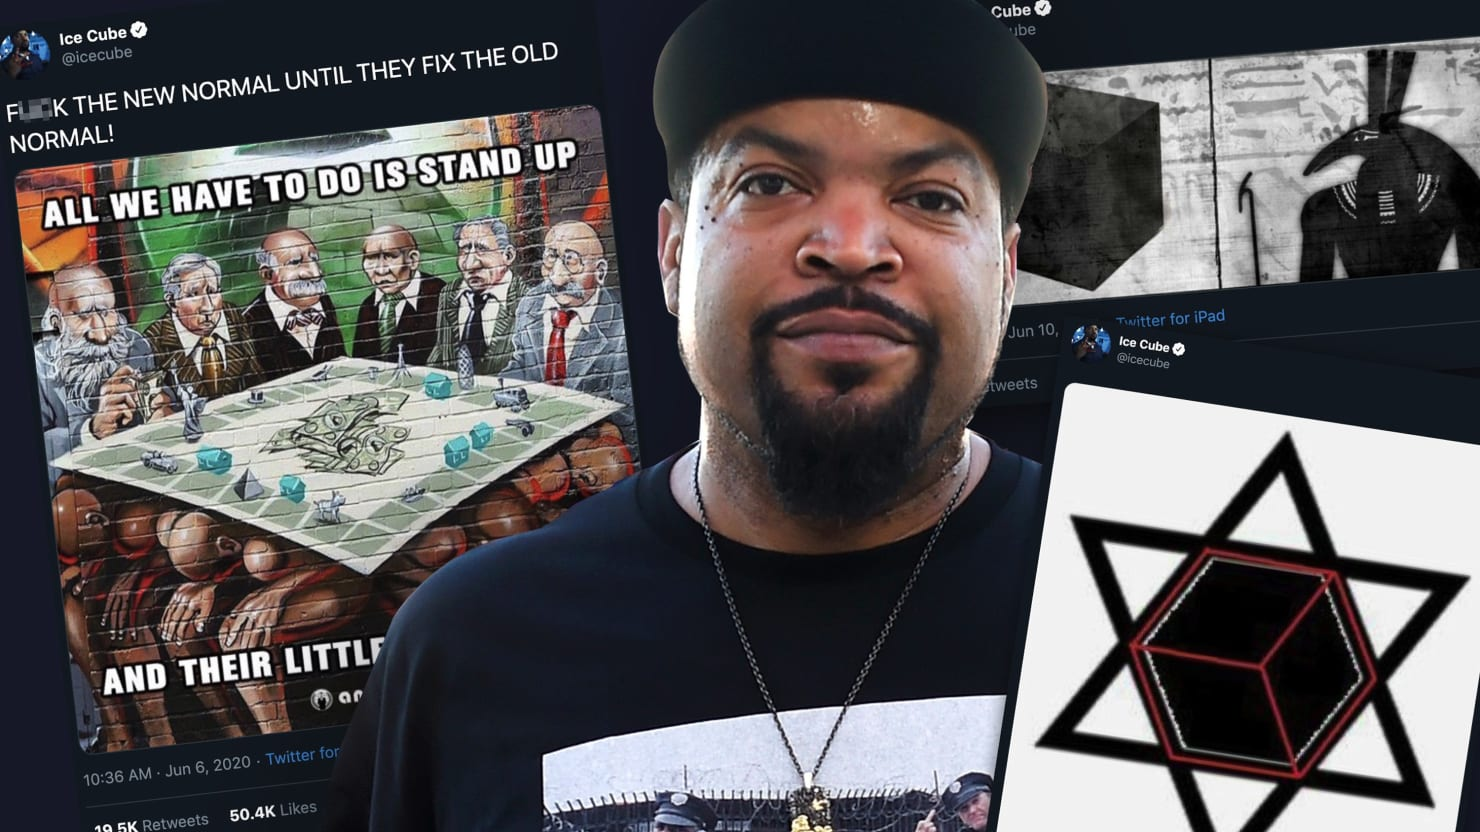 What The Hell Is Going On With Ice Cube? - cover